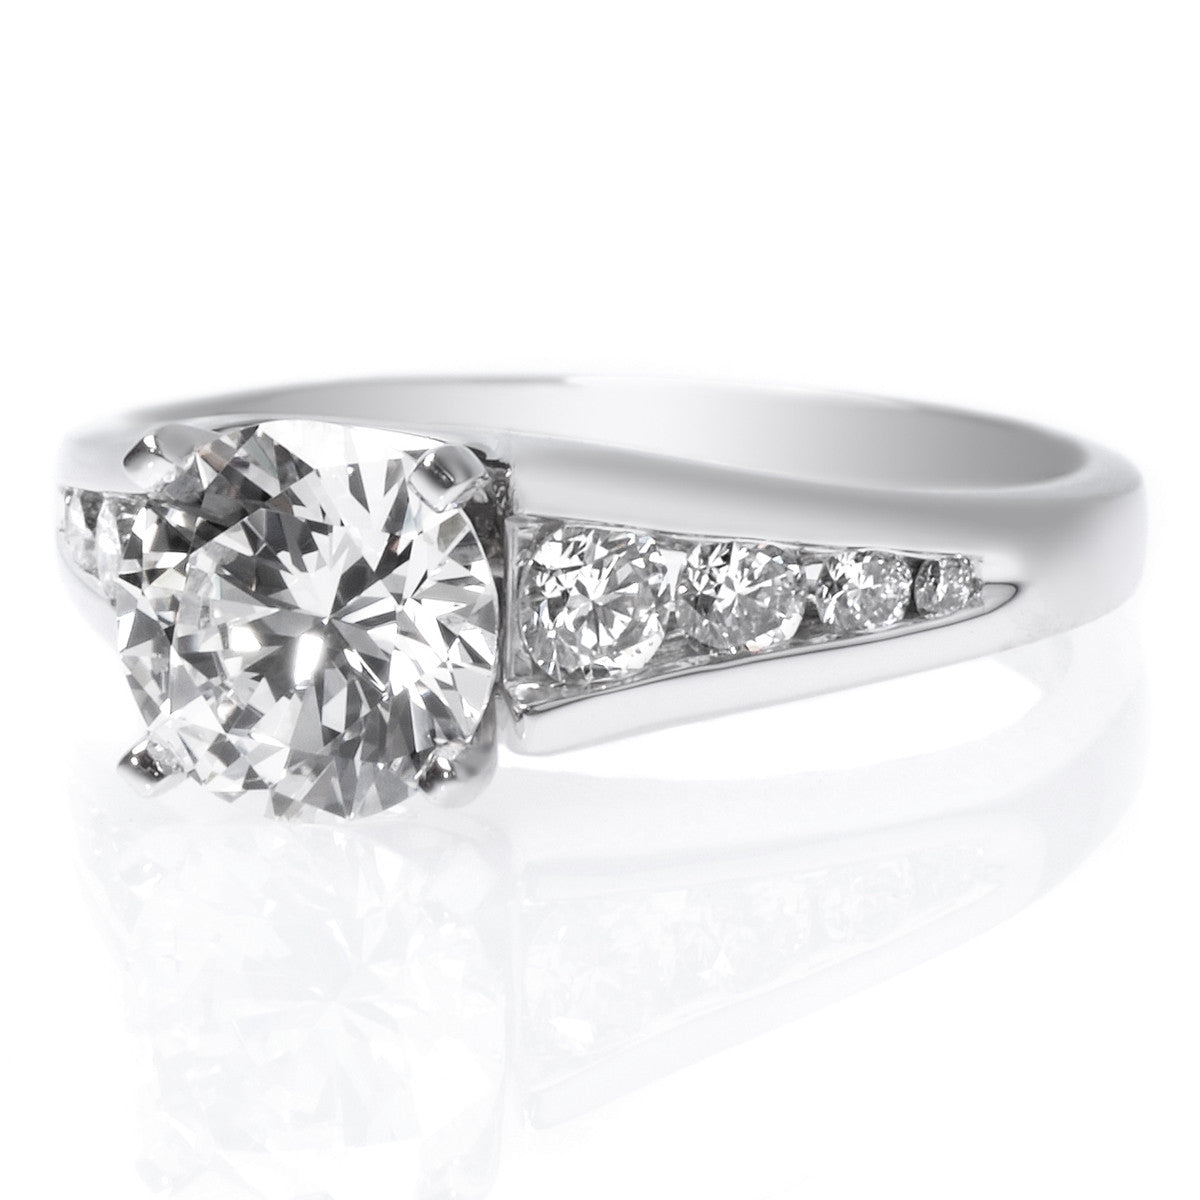 Platinum Graduated Channel Set Engagement Ring Setting